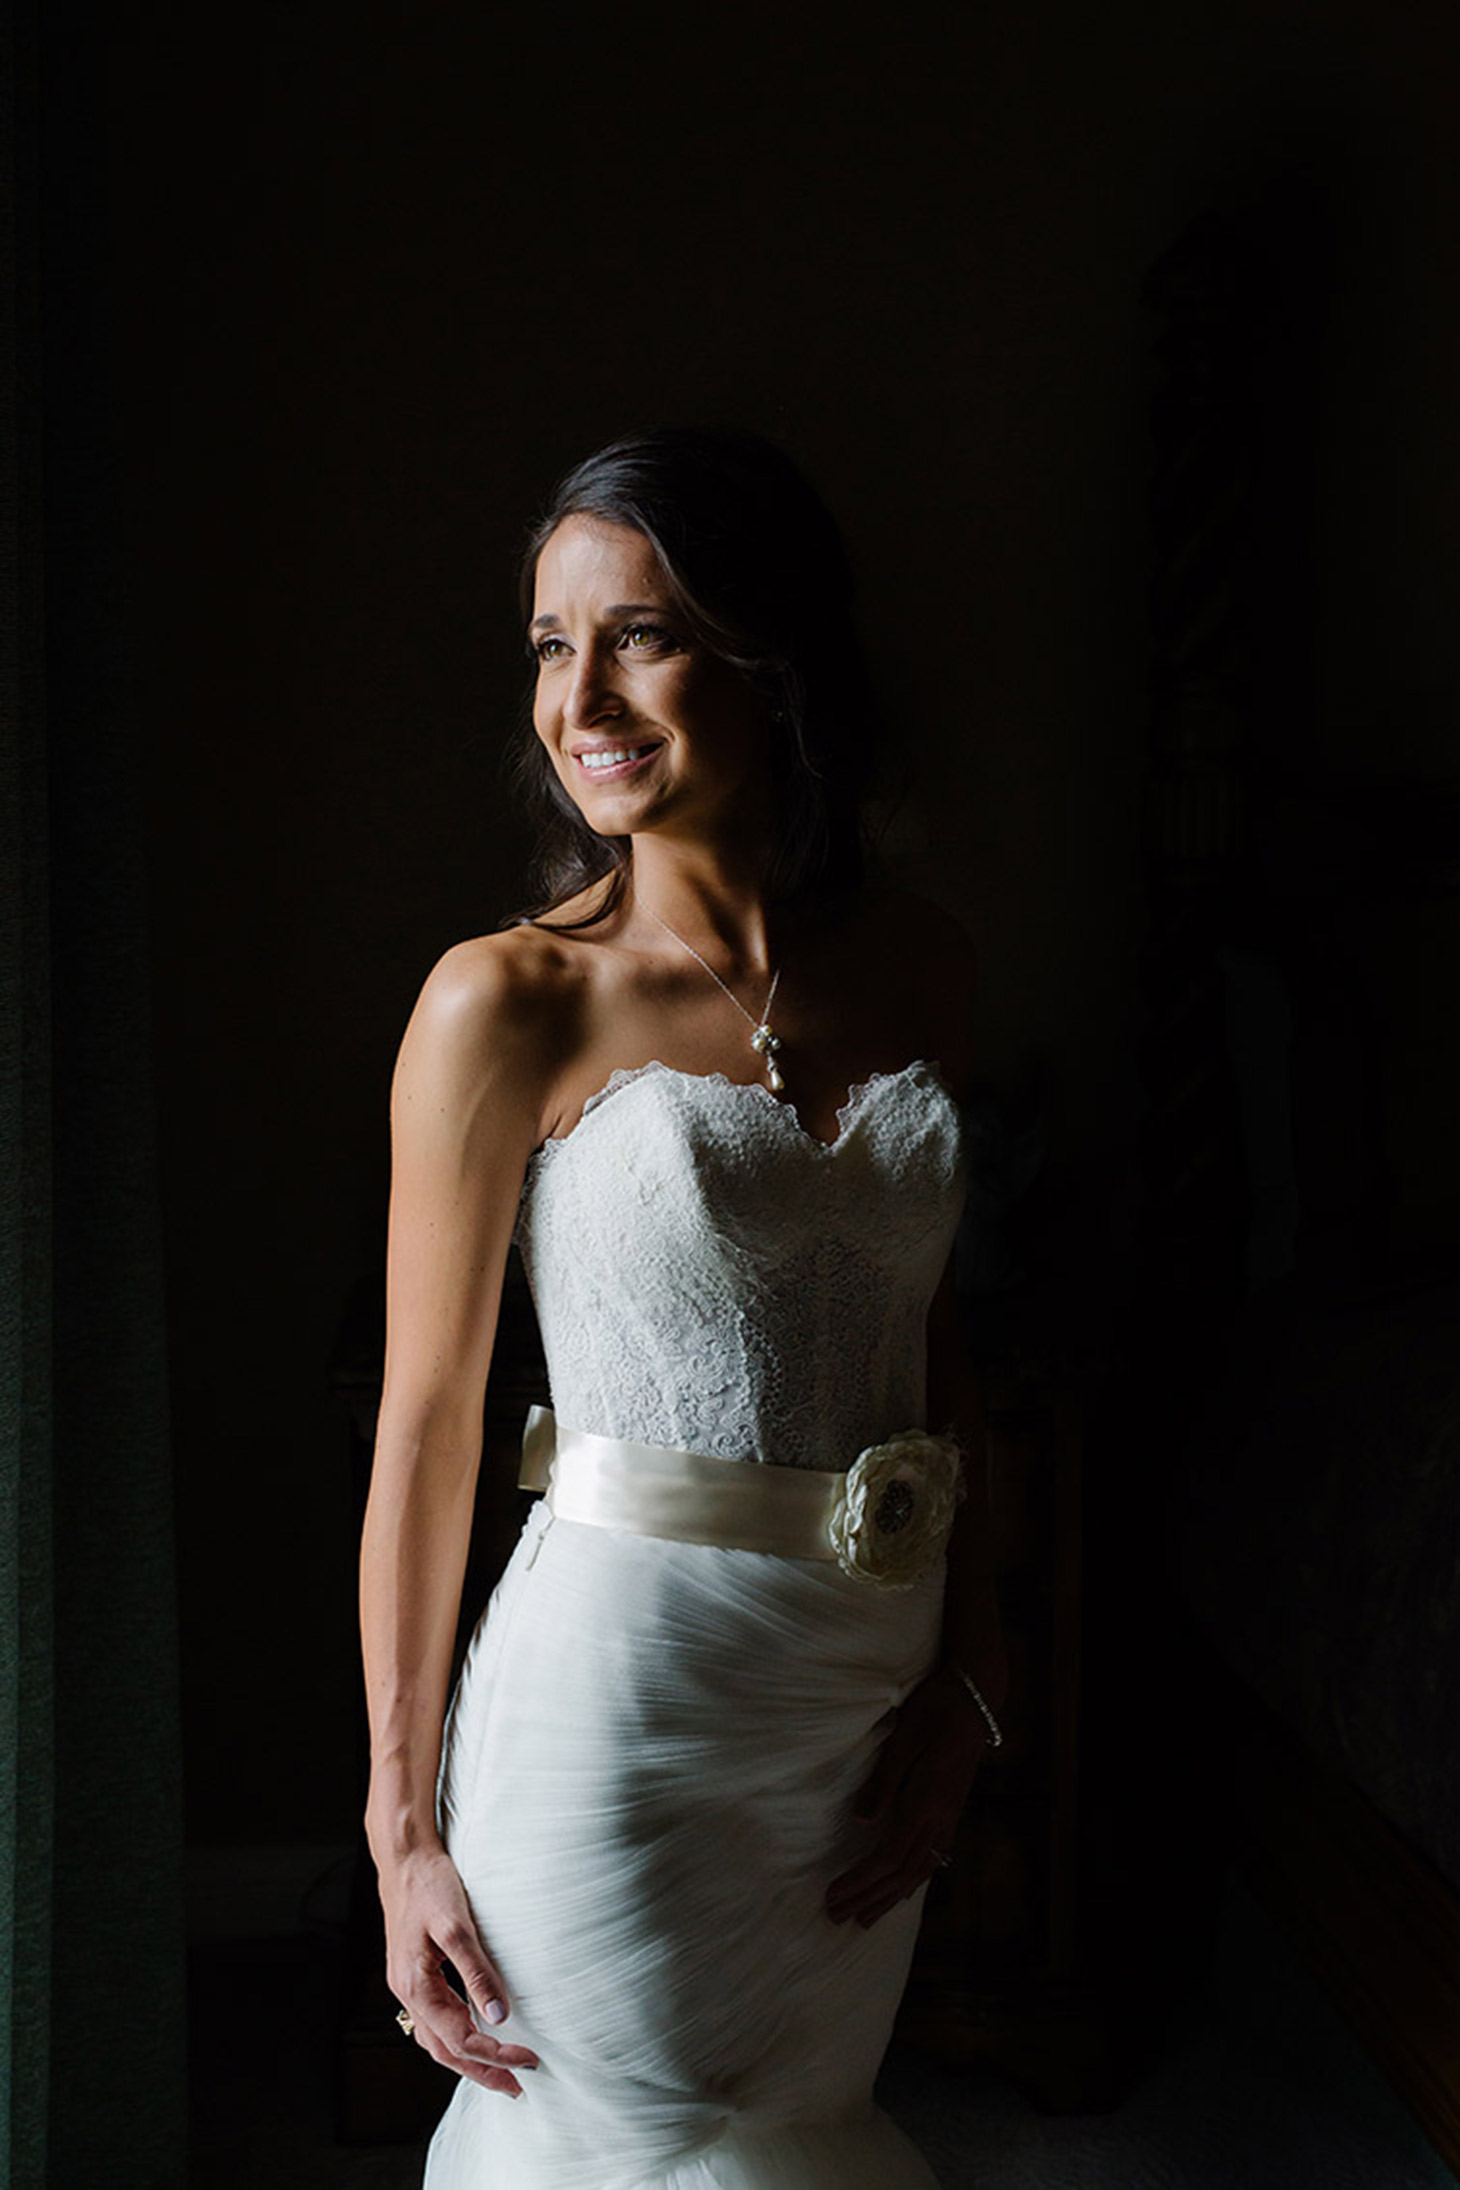 Megan-Newton-Photography-Best-Wedding-Photos-2015-015